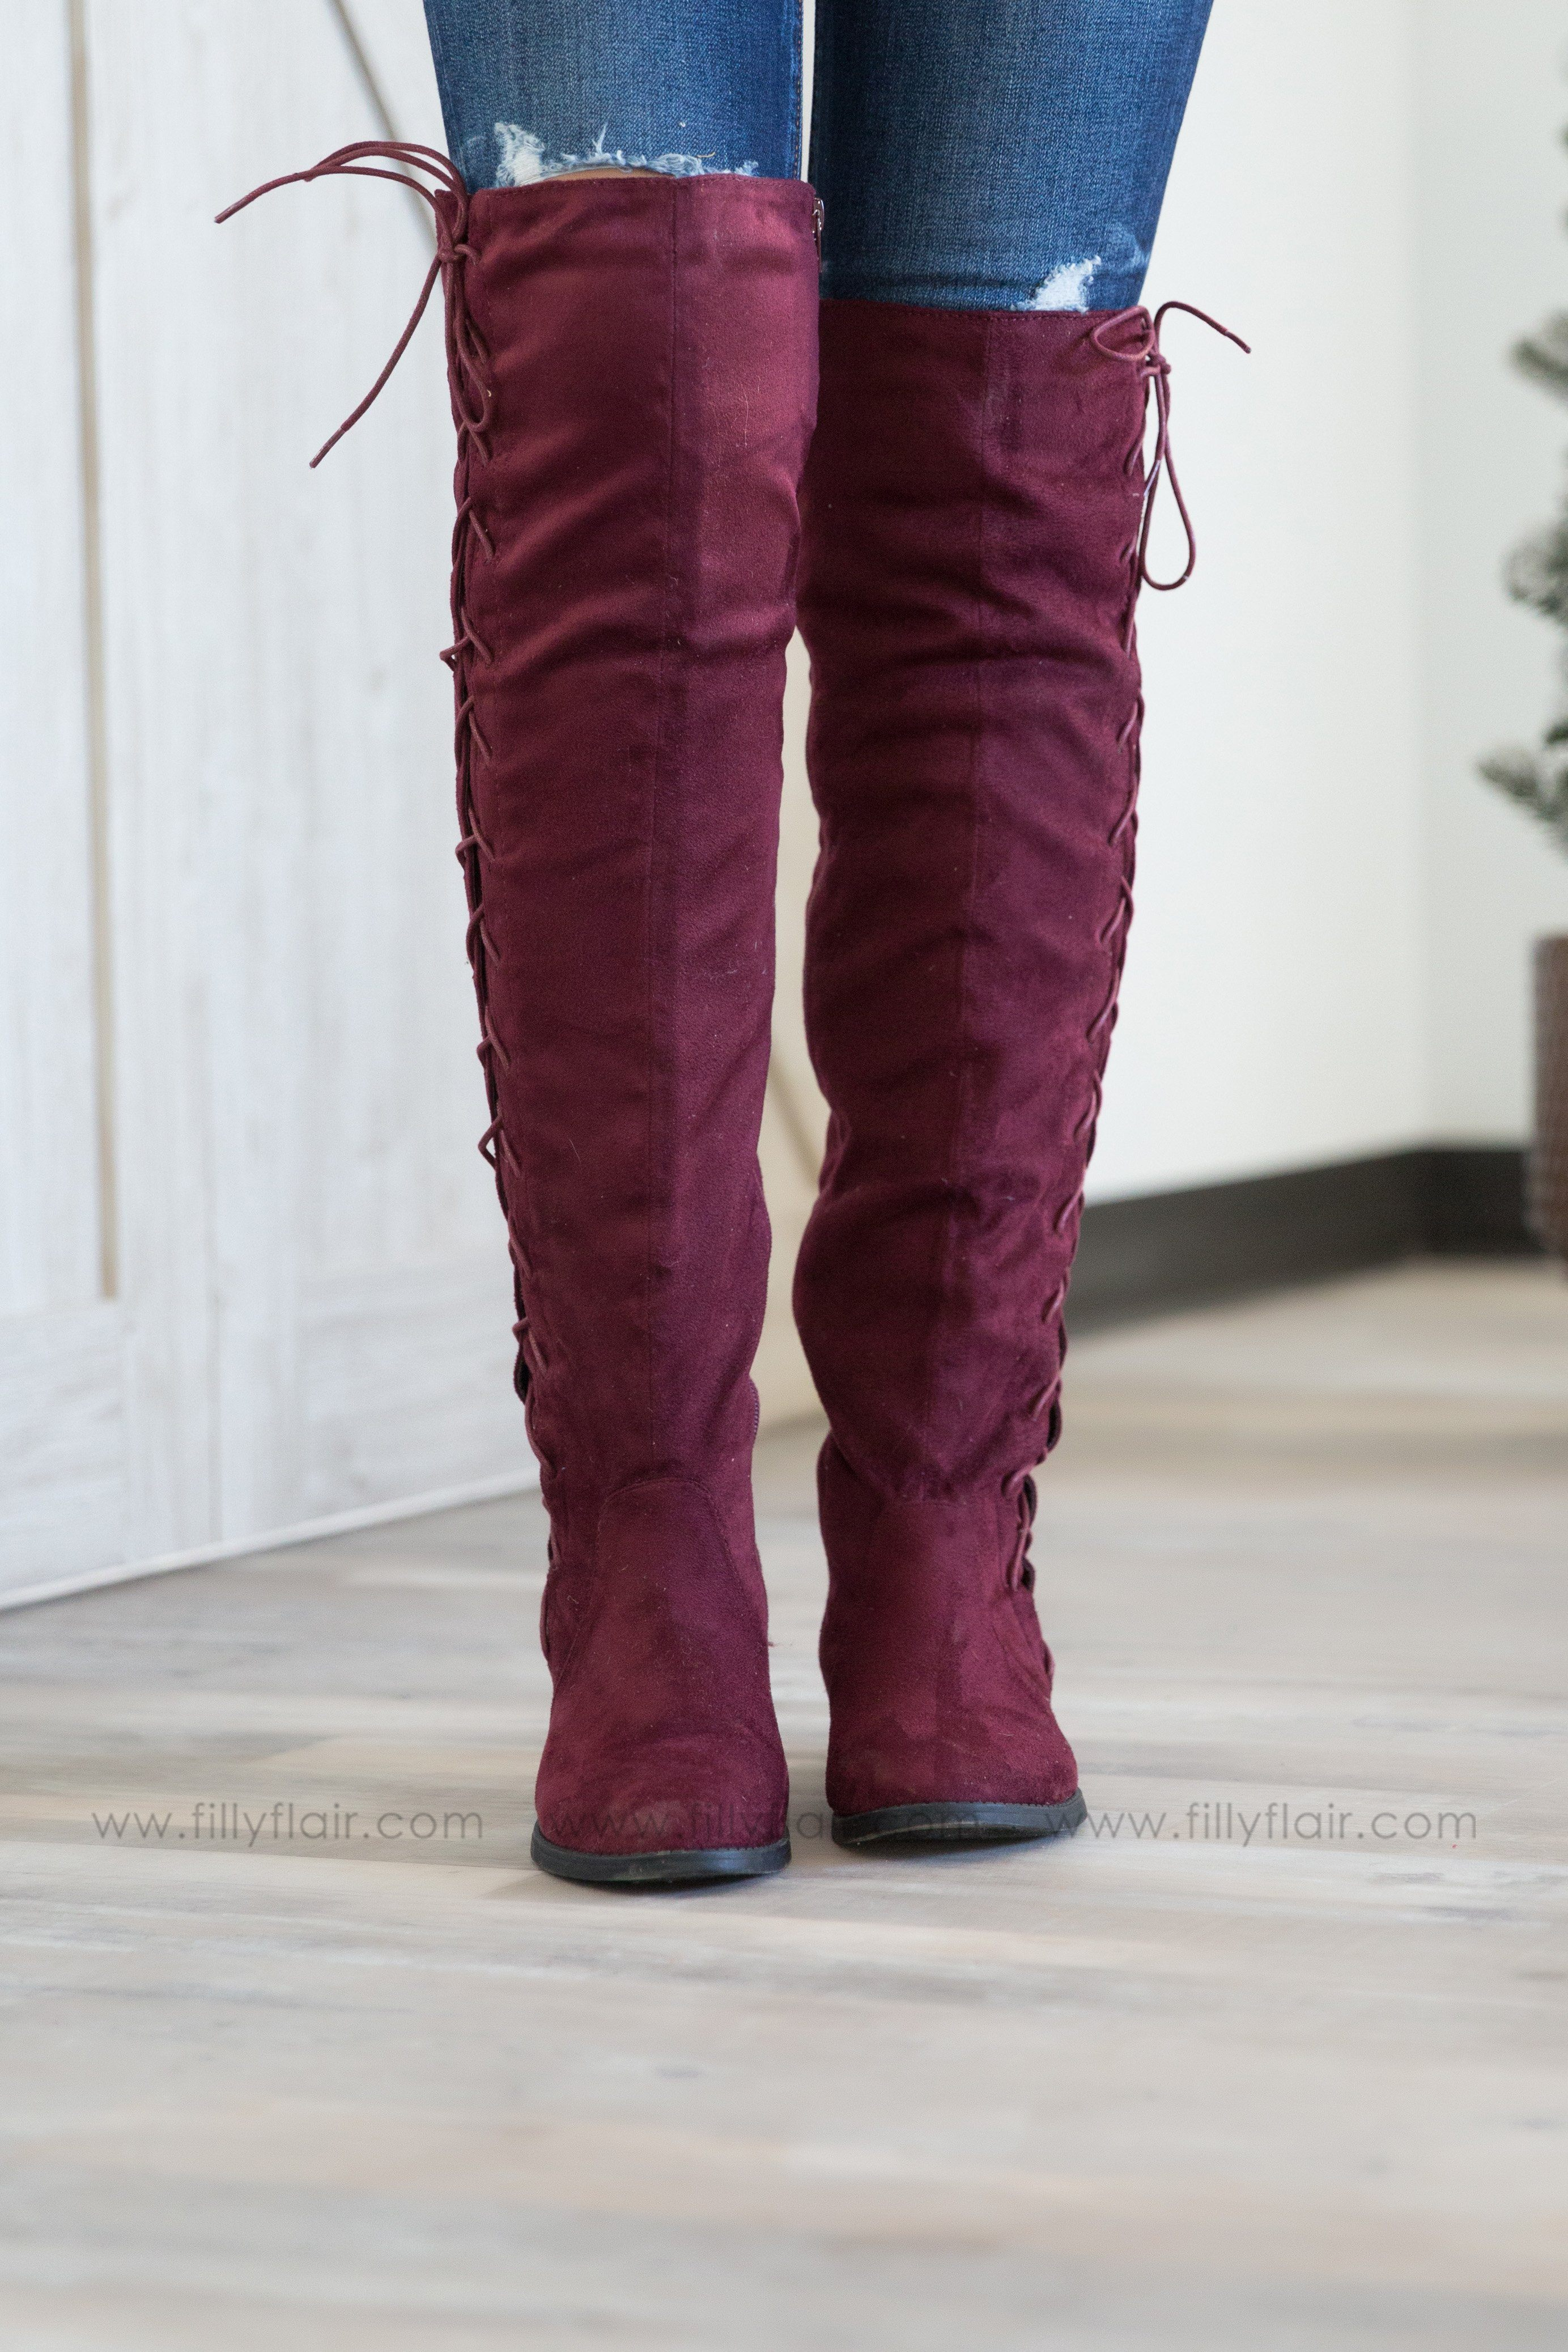 Lace Me Up Burgundy Boots - Filly Flair